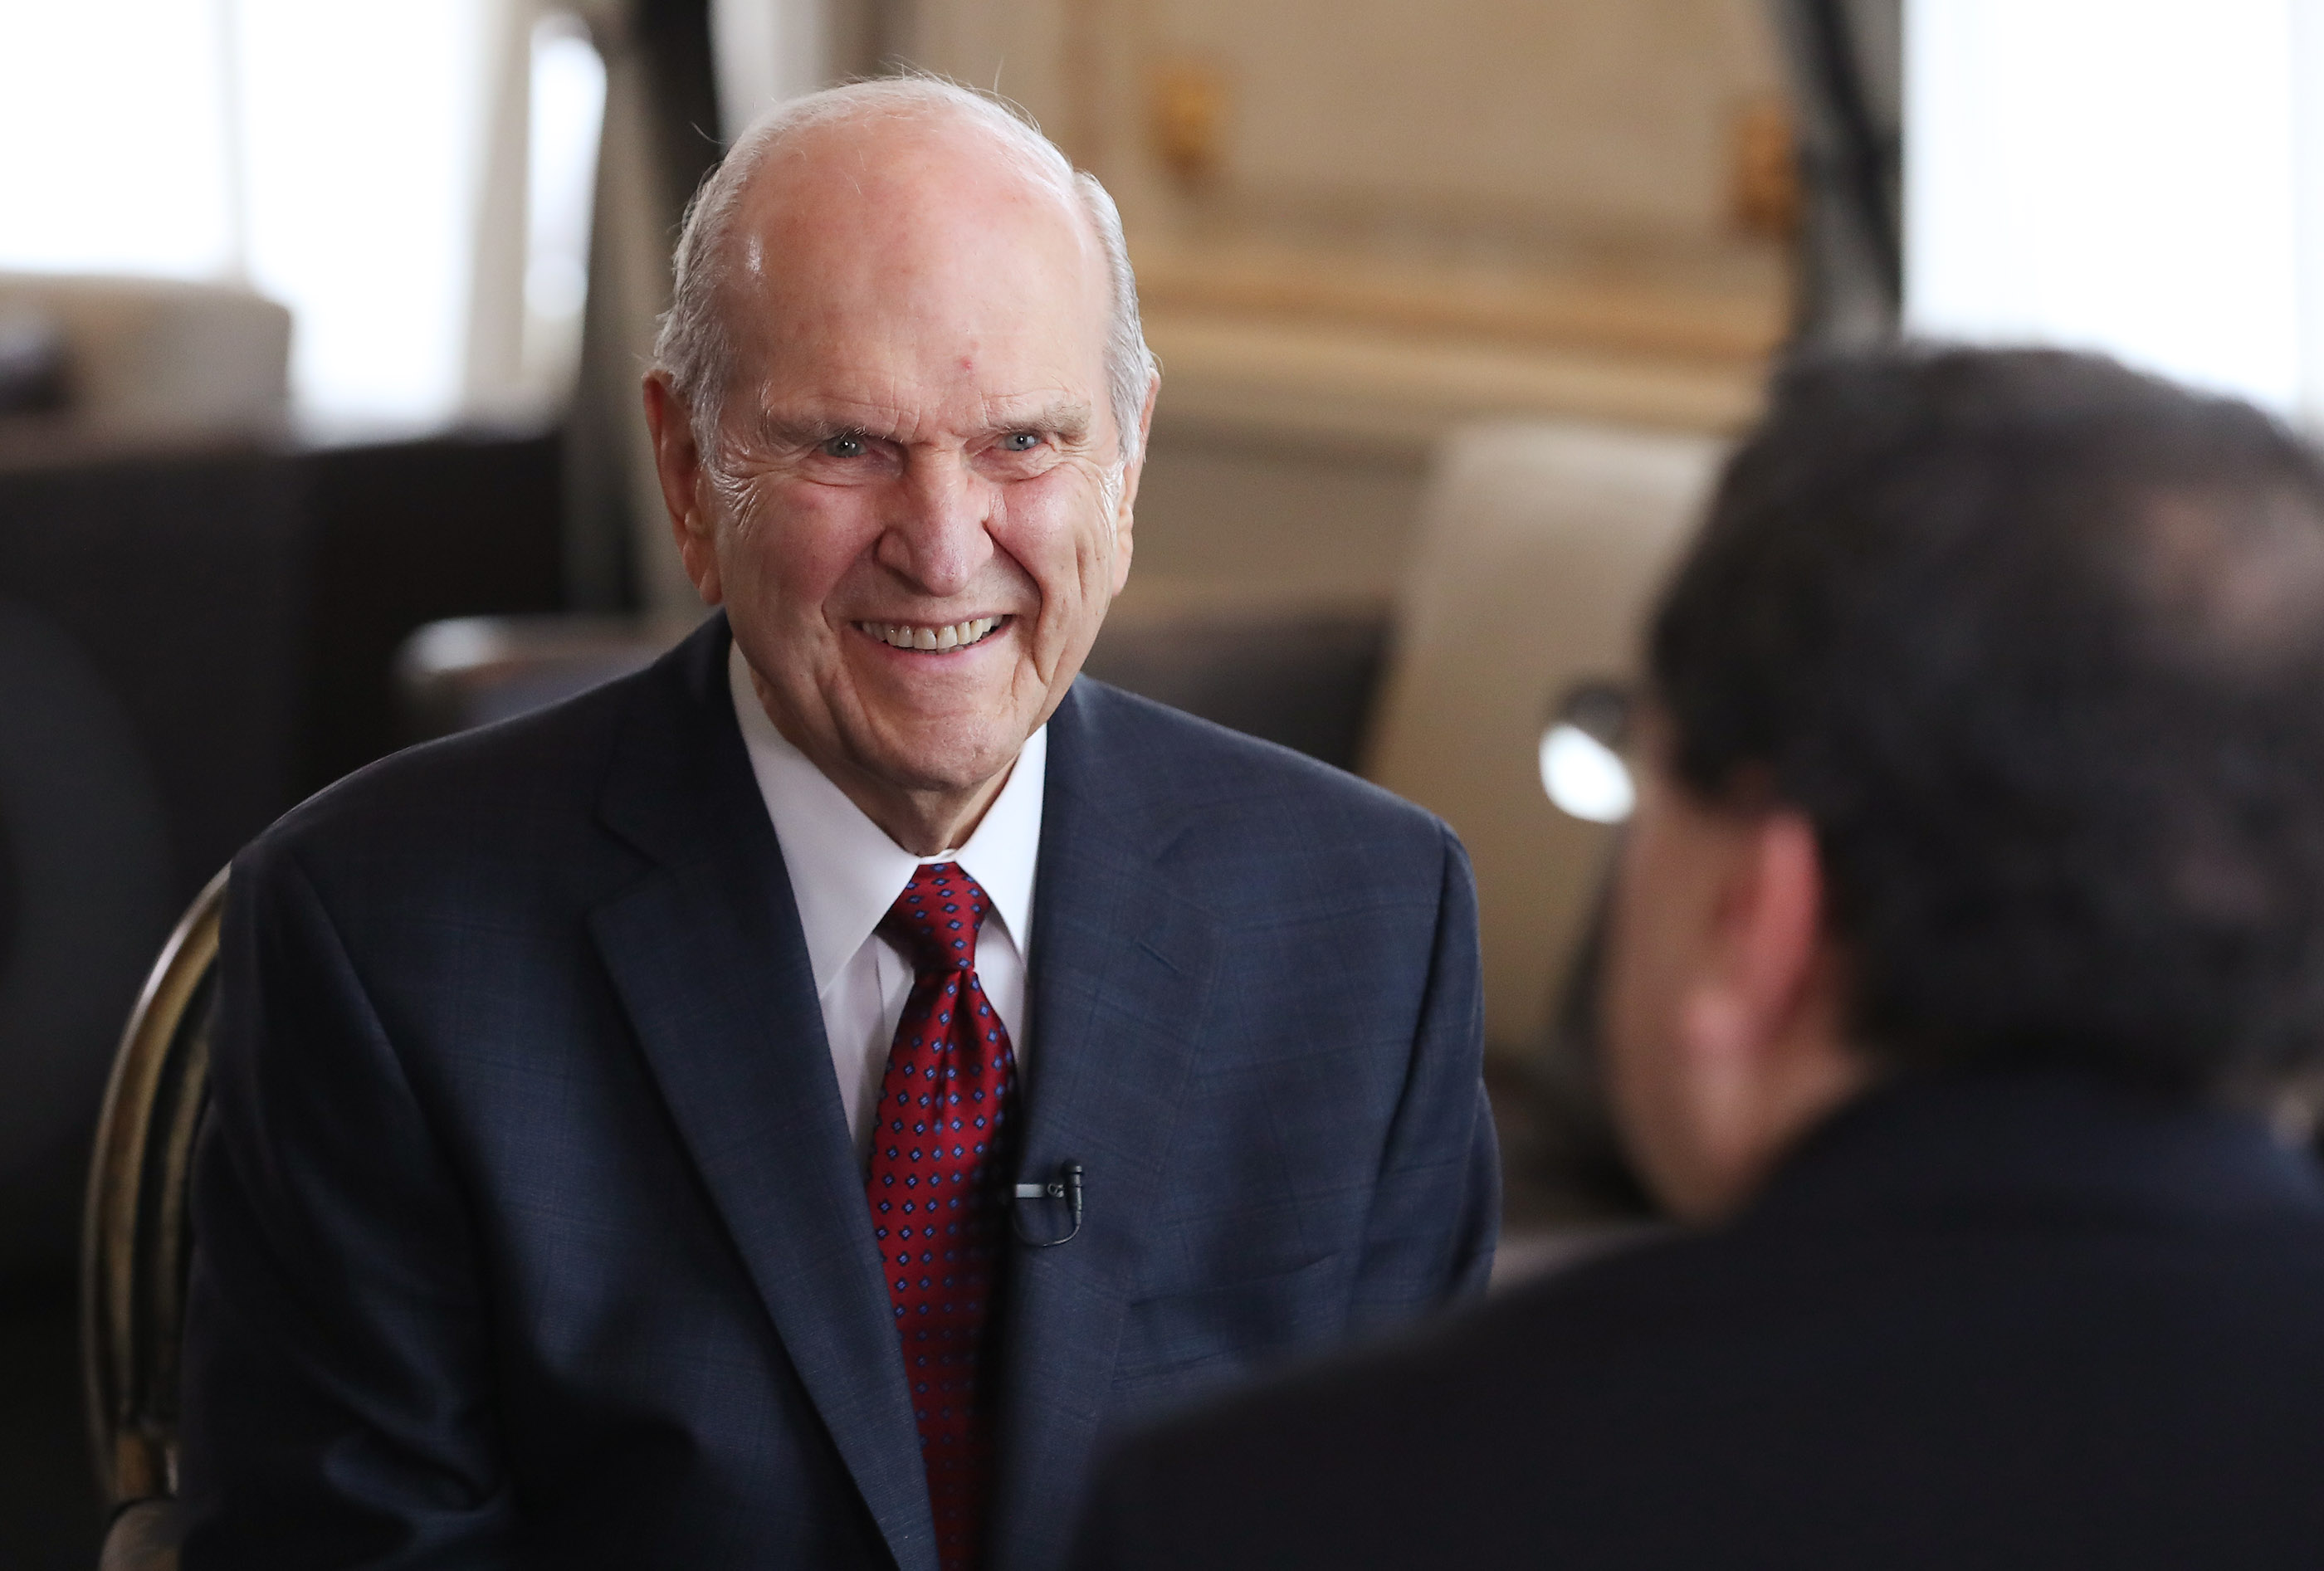 President Russell M. Nelson of The Church of Jesus Christ of Latter-day Saints is interviewed by Sergio Rubin, Argentine journalist and biographer of Pope Francis, in Montevideo, Uruguay on Oct. 26, 2018.